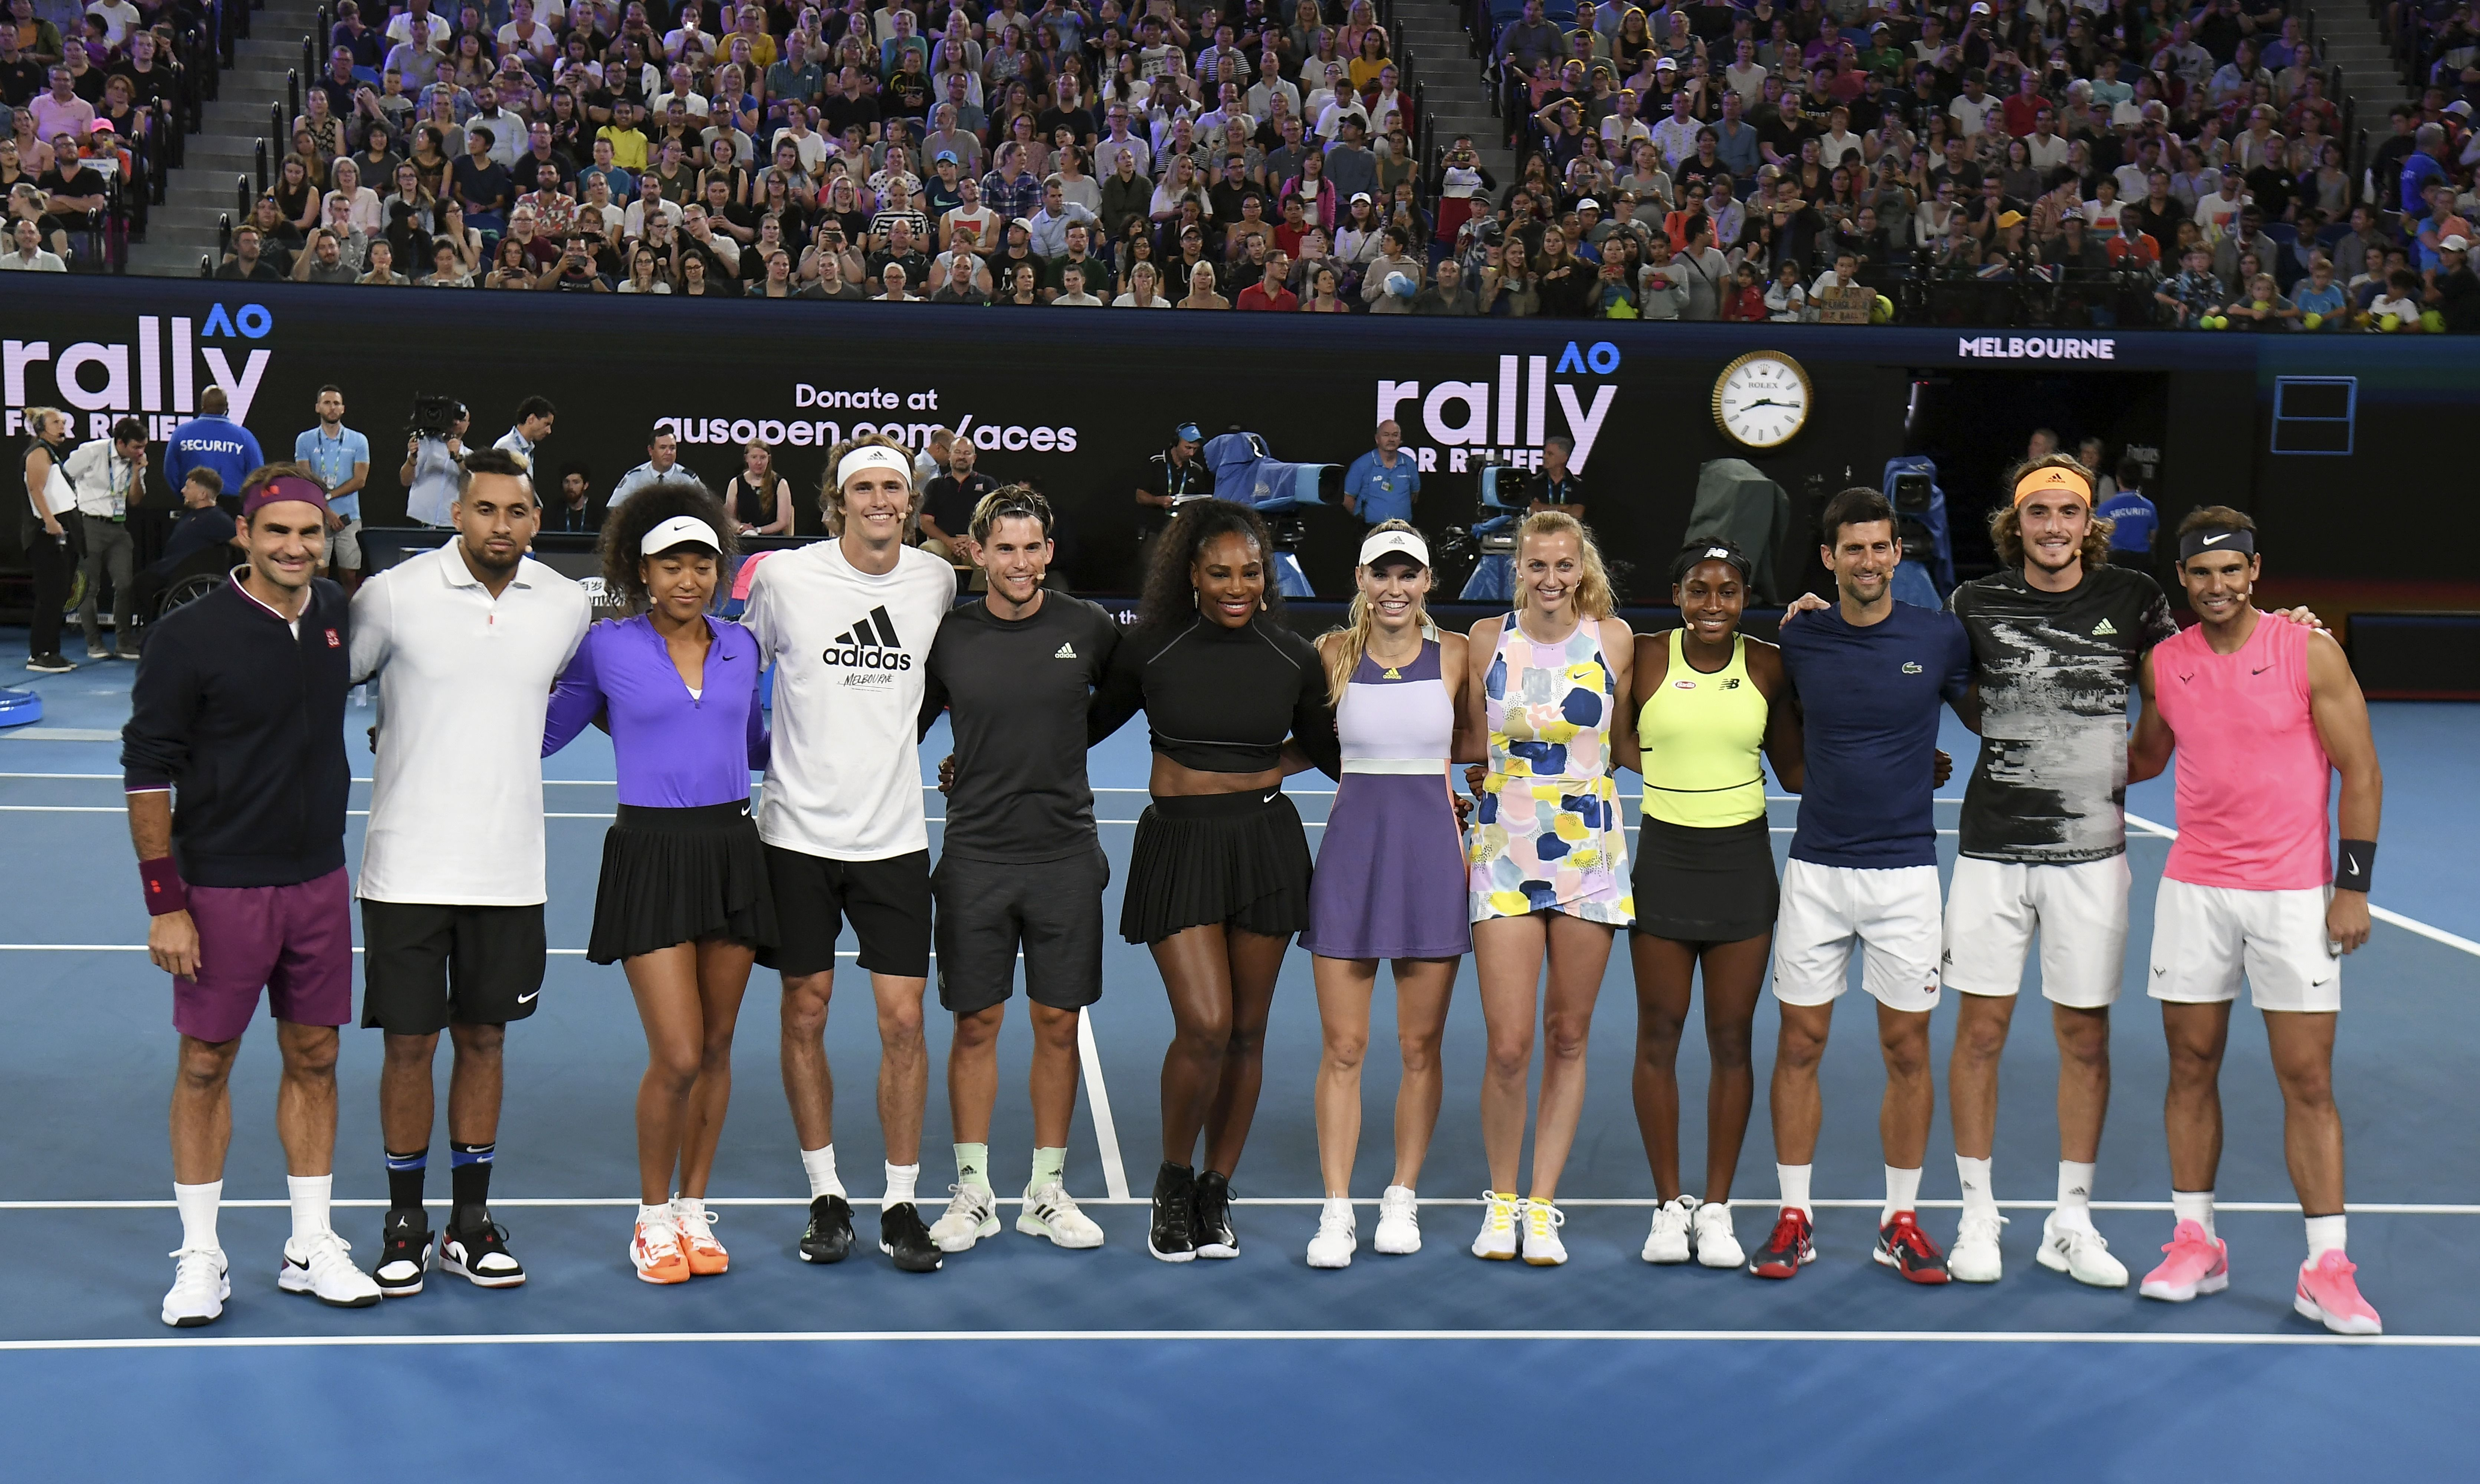 TENNIS-AUS-OPEN-AUSTRALIA-FIRE-ENVIRONMENT-CLIMATE